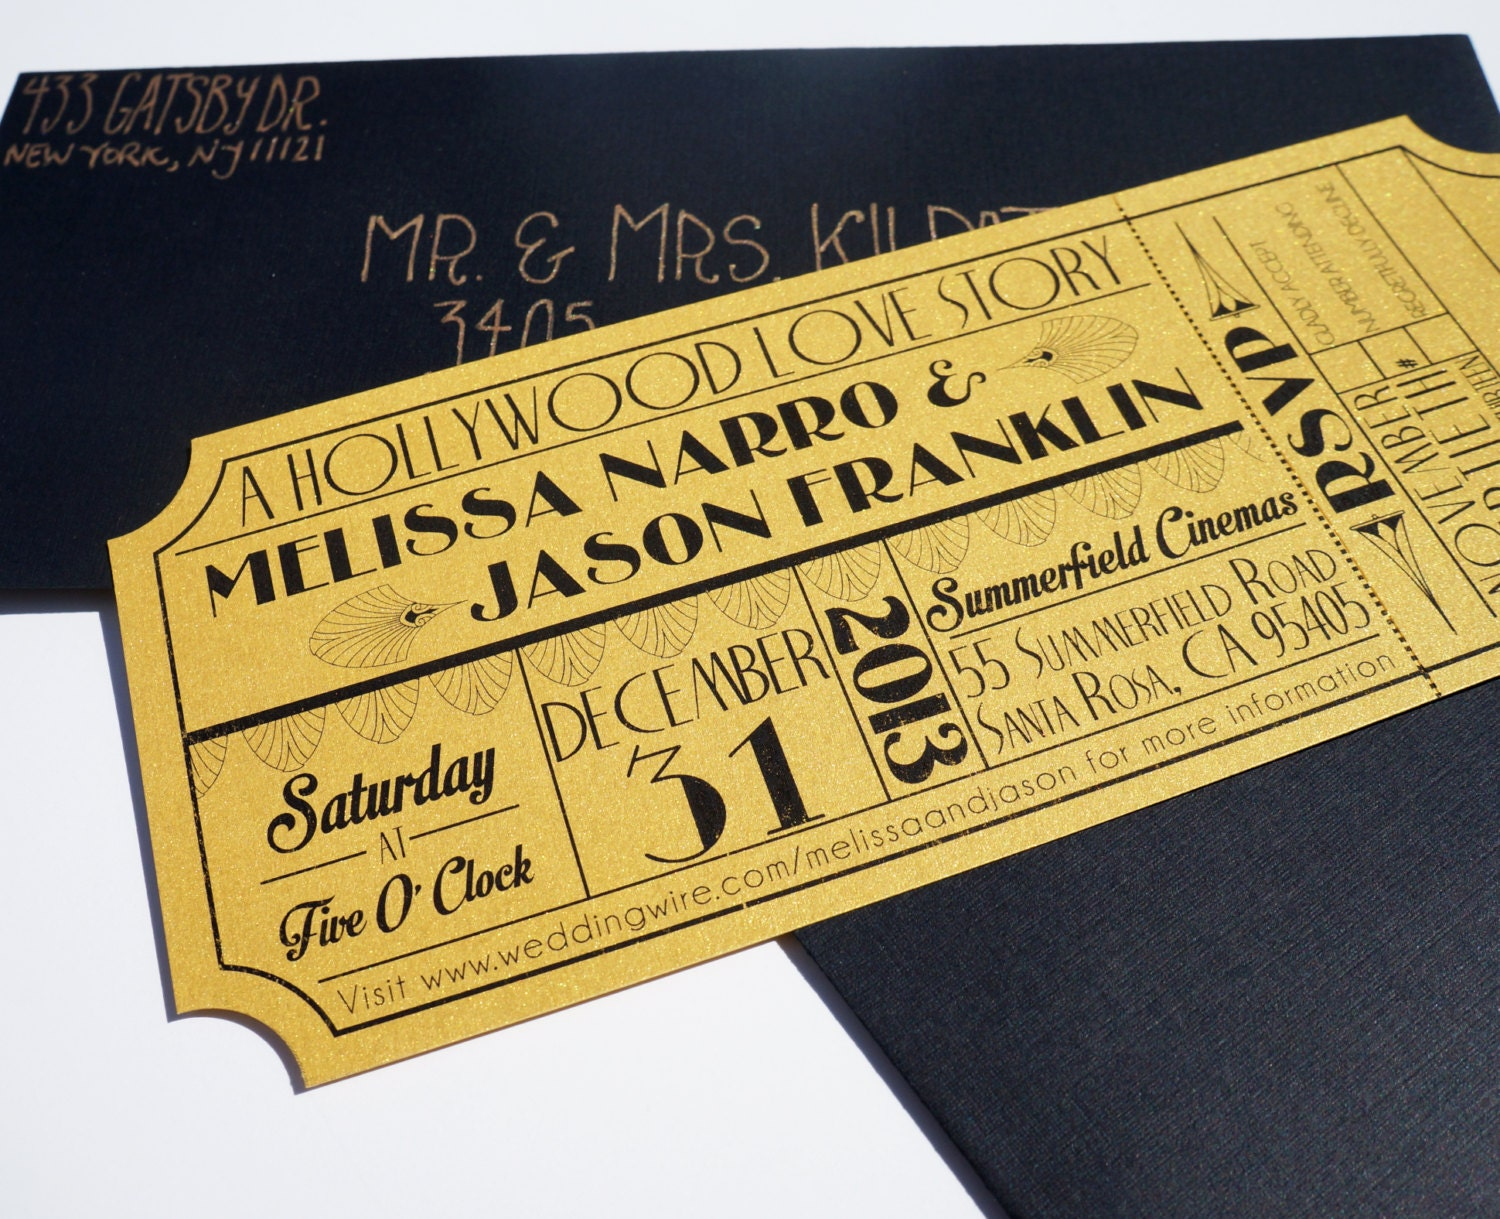 film premiere invitation template - old hollywood art deco gold movie ticket wedding invitation